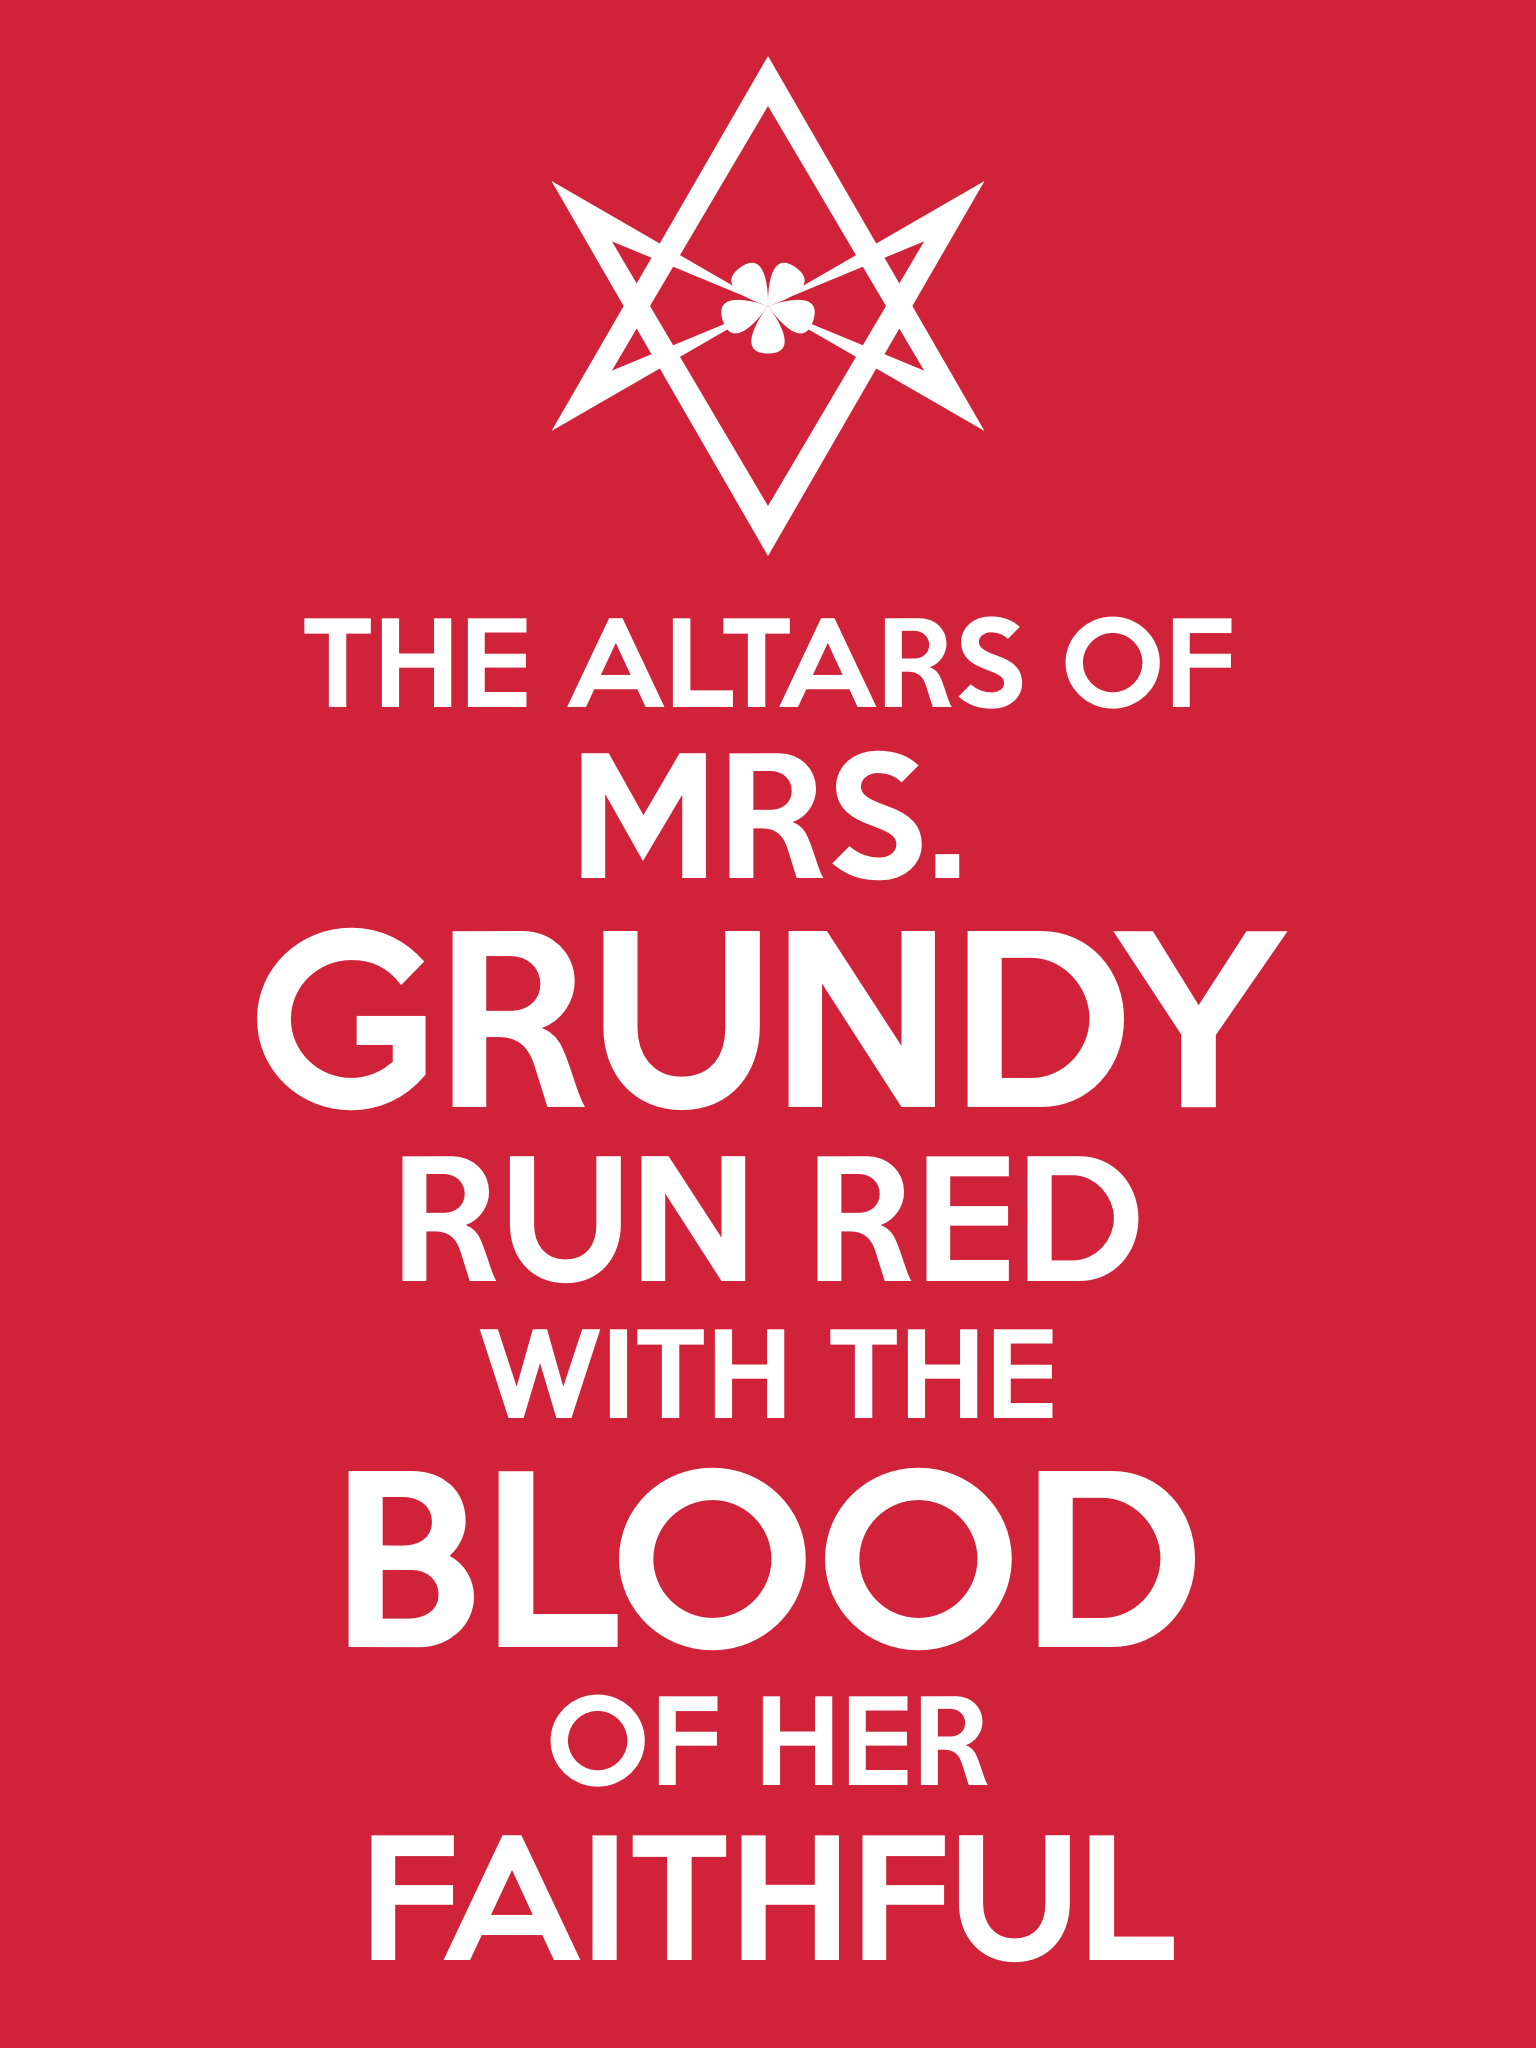 Unicursal MRS GRUNDY Propaganda Poster from Hermetic Library Ministry of Information